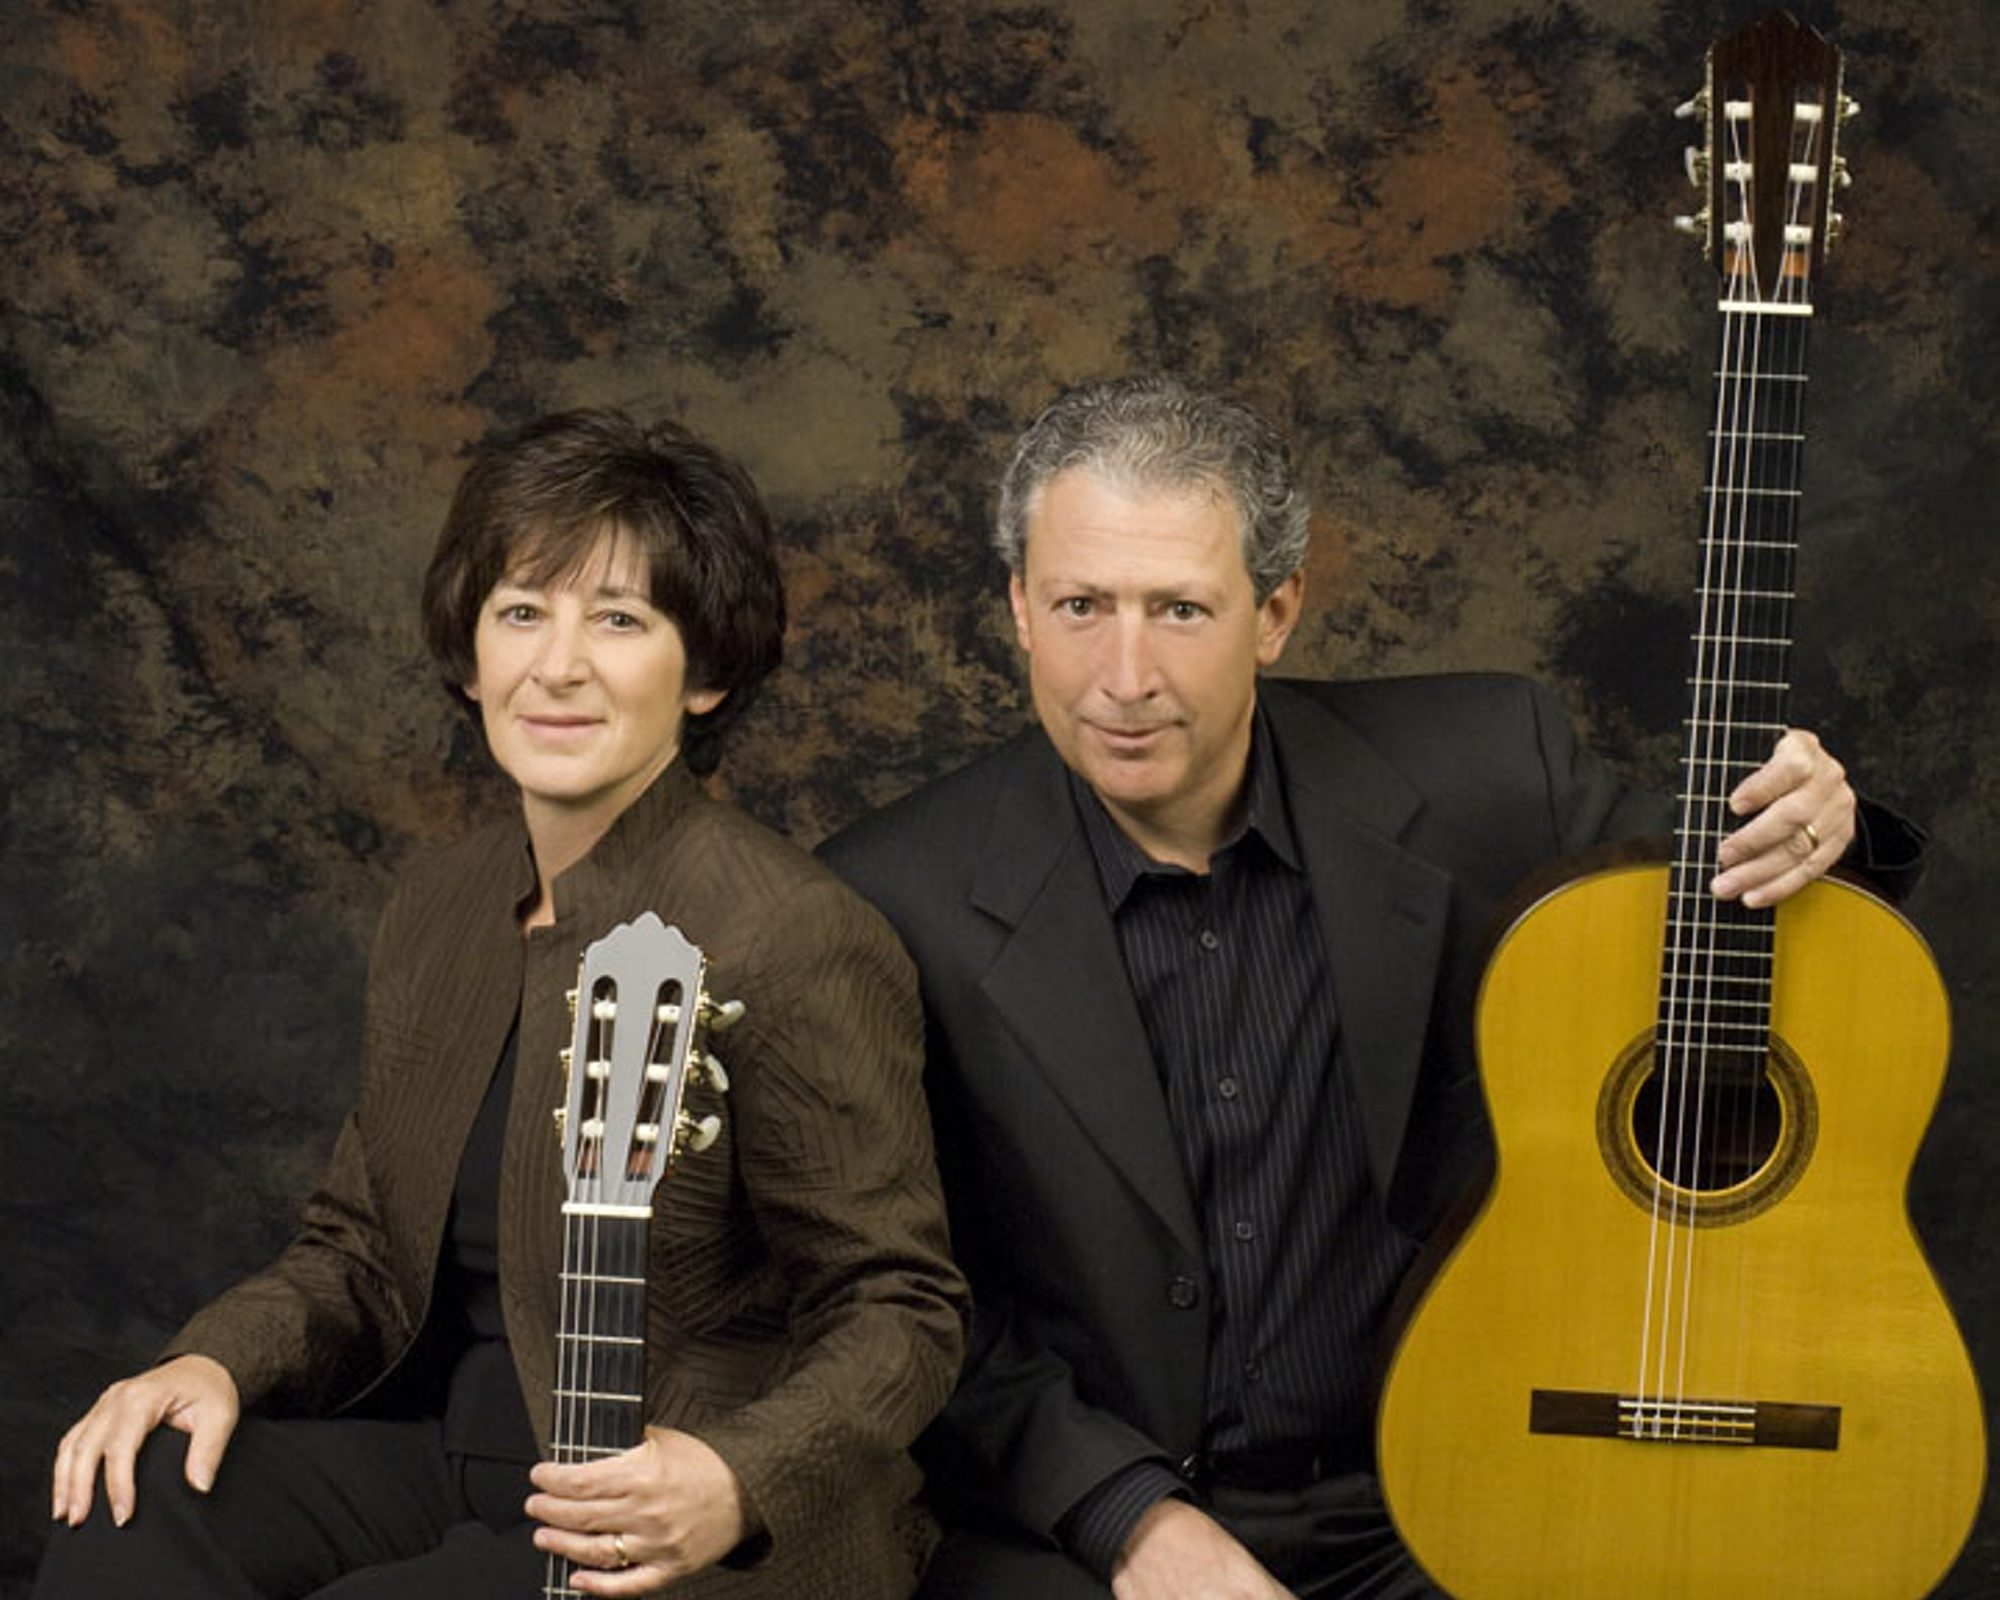 Joanne Castellani and Michael Andriaccio perform Sunday in Holy Trinity Lutheran Church as part of the Friends of Vienna series.